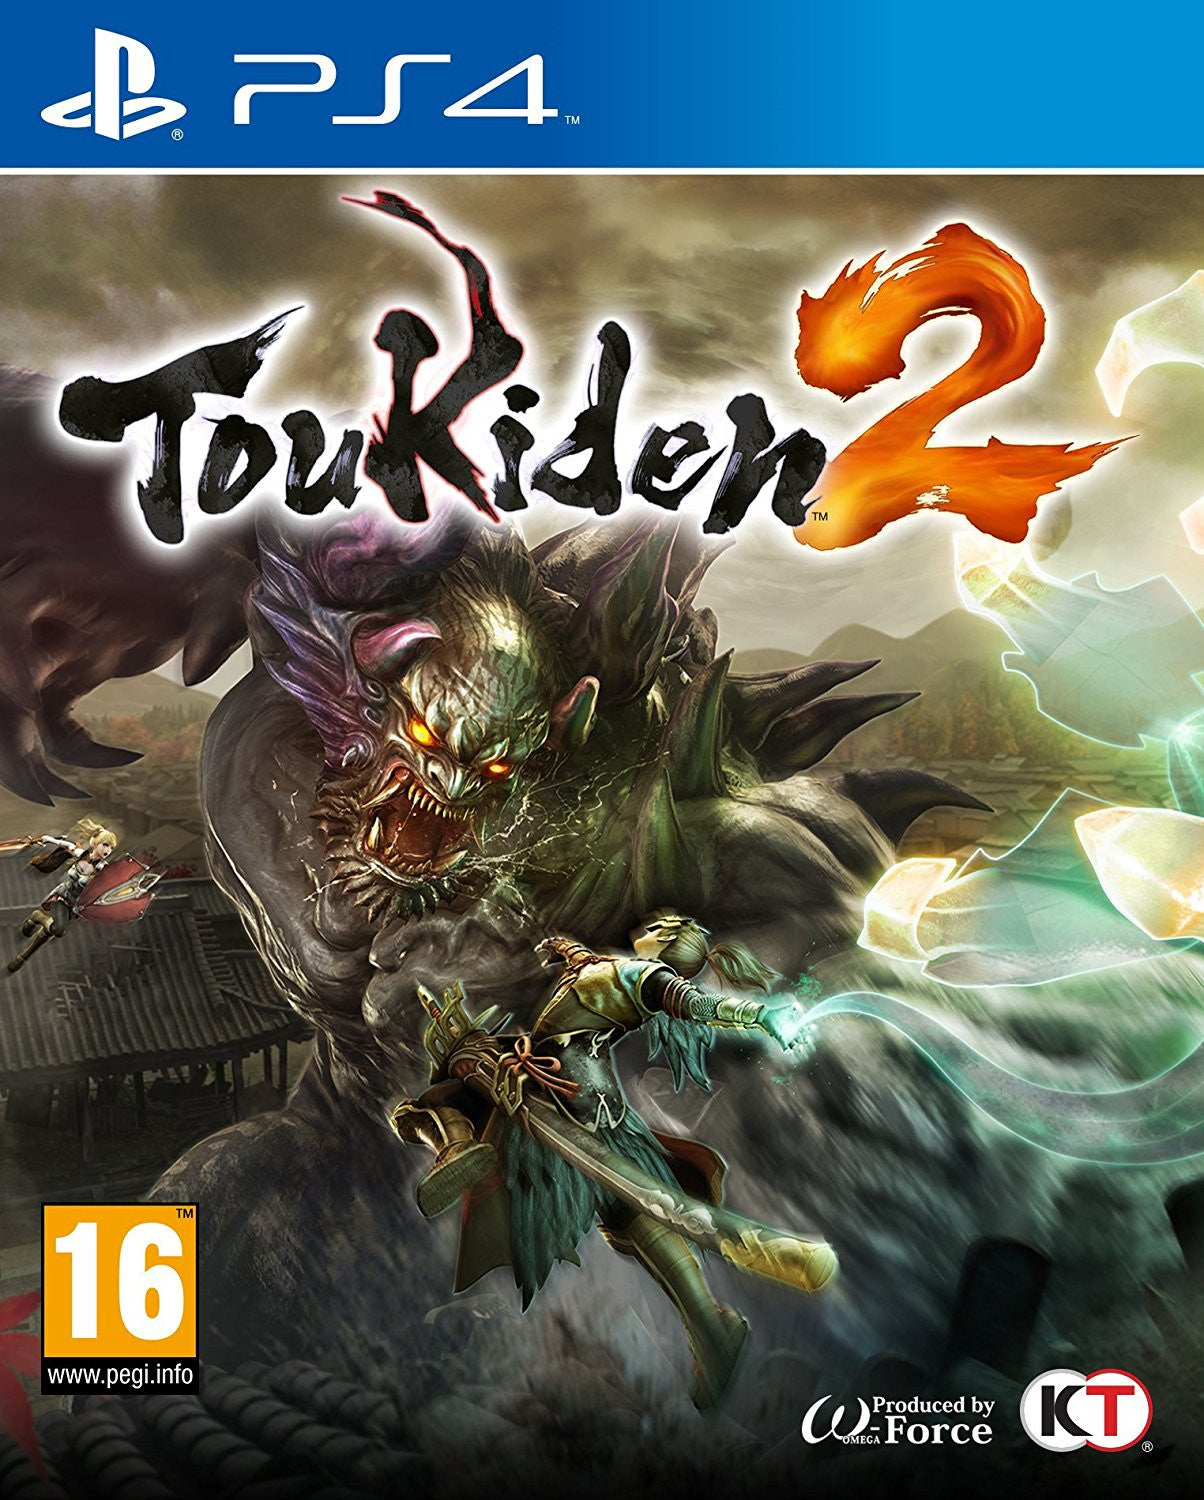 Toukiden 2 - PS4 - Video Games by Koei Tecmo Europe The Chelsea Gamer